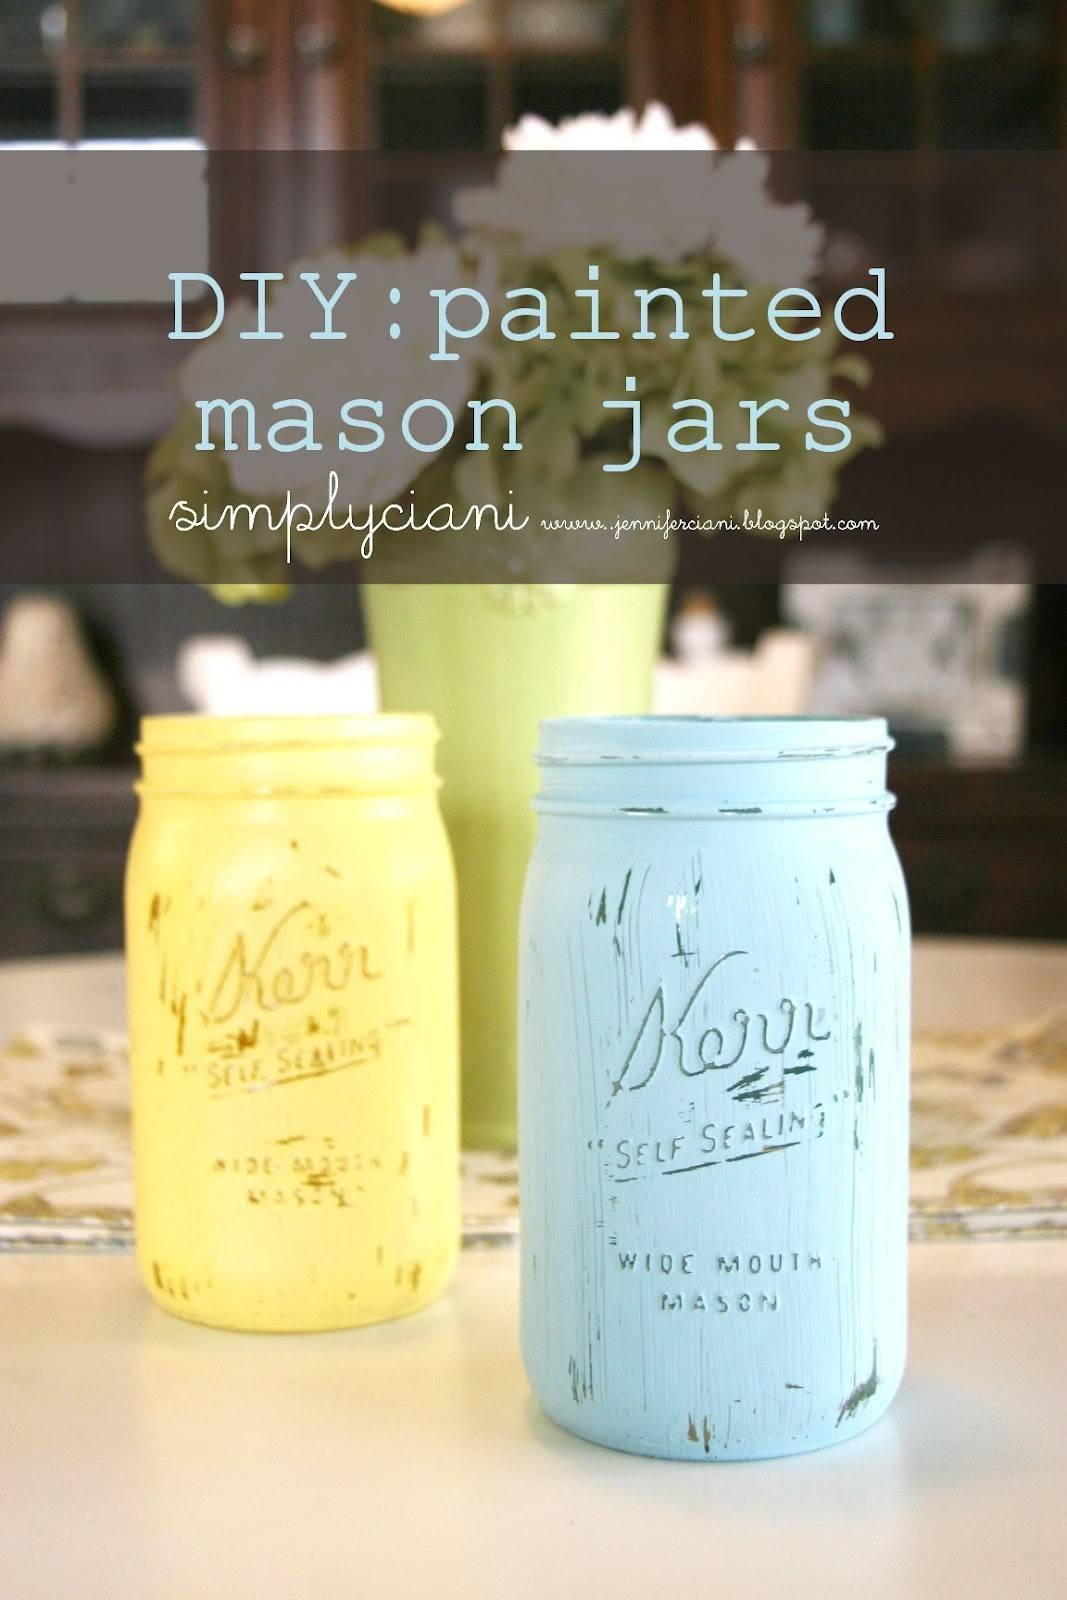 Simply Ciani Diy Painted Mason Jars